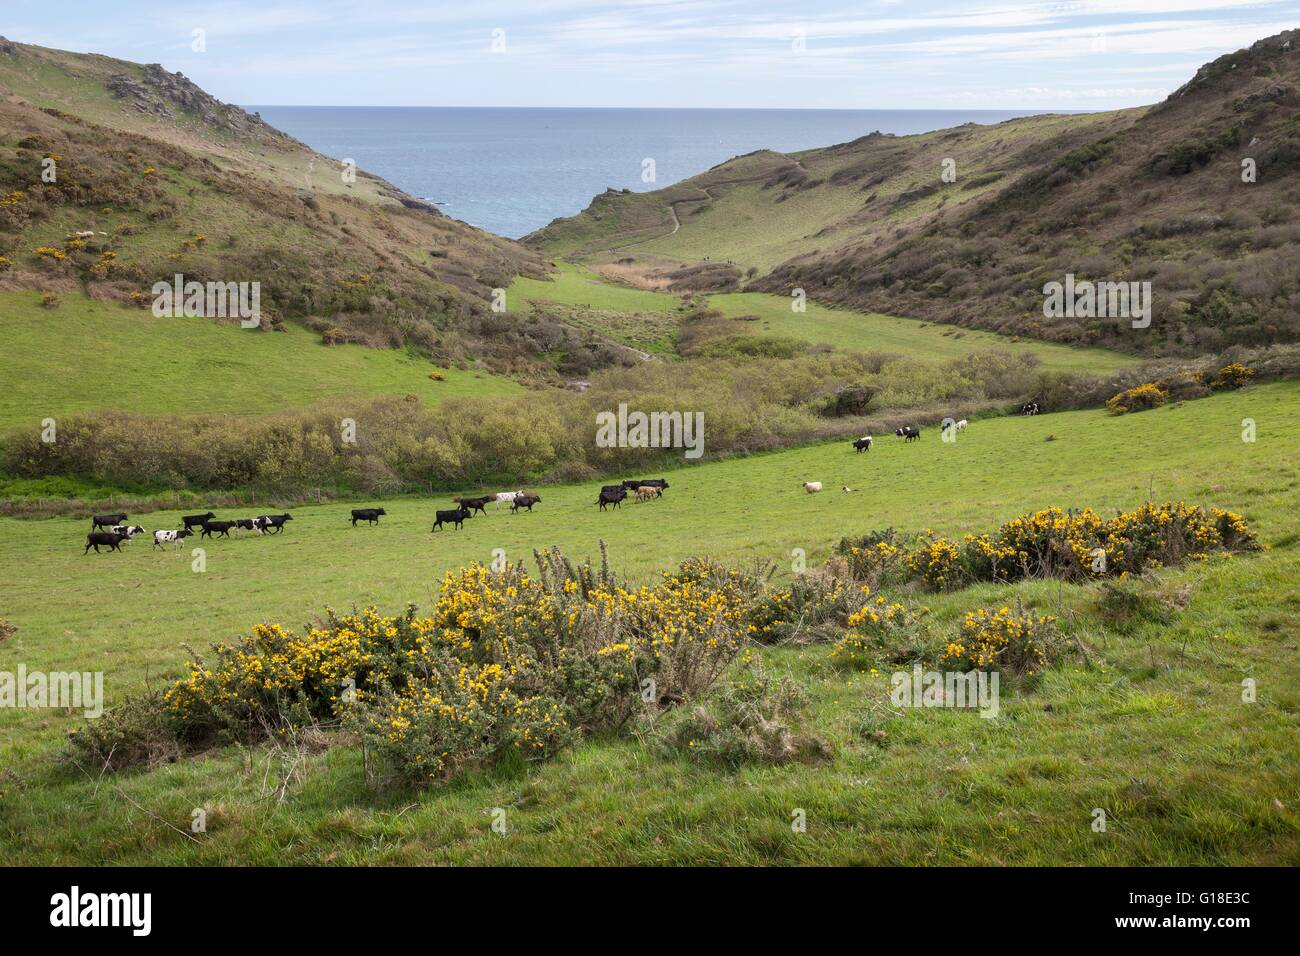 Cows and Sheep near Soar Mill Cove, Devon, England. - Stock Image